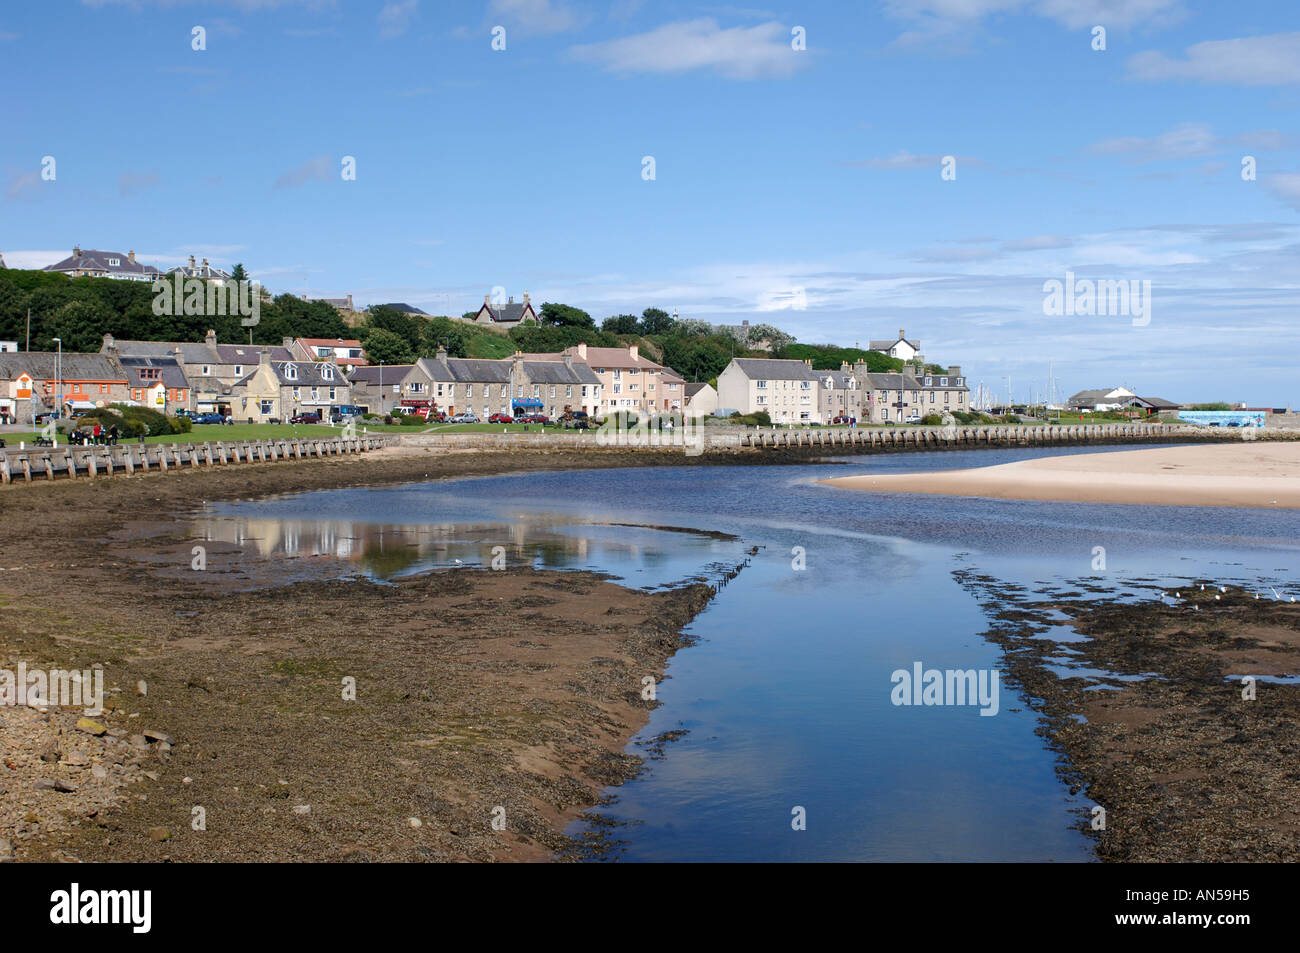 Lossiemouth seafront town from the River Lossie, Morayshire.  XPL 3225-321 - Stock Image